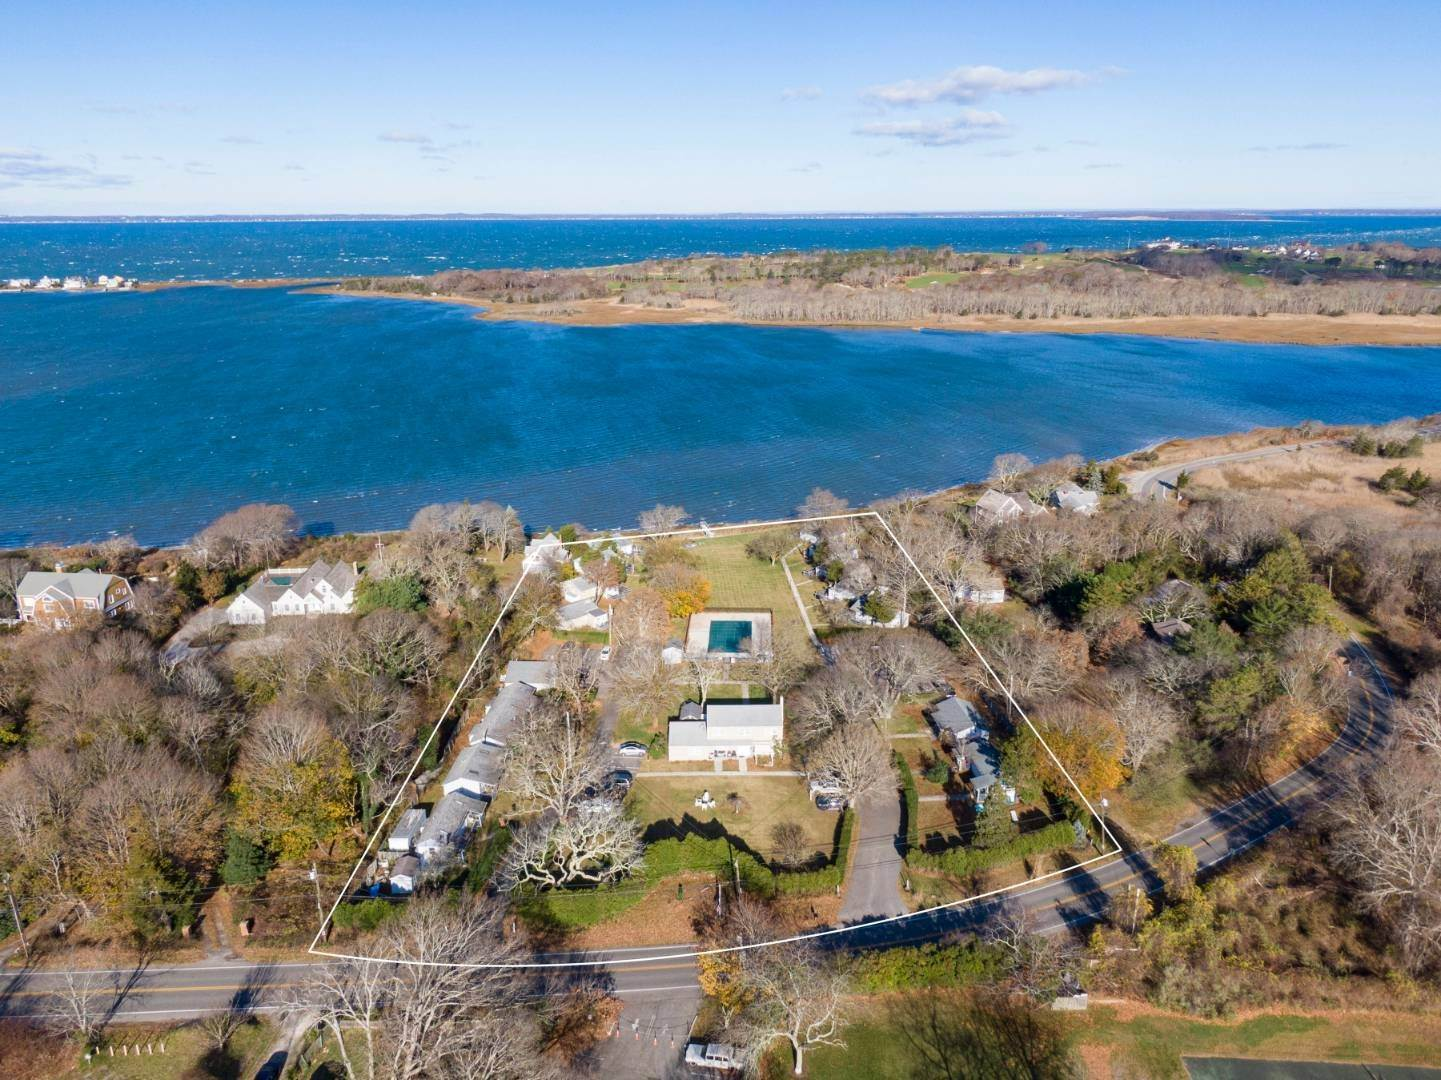 Commercial for Sale at Southampton's Only Waterfront Resort Property 35 Shrubland Rd, Southampton, NY 11968